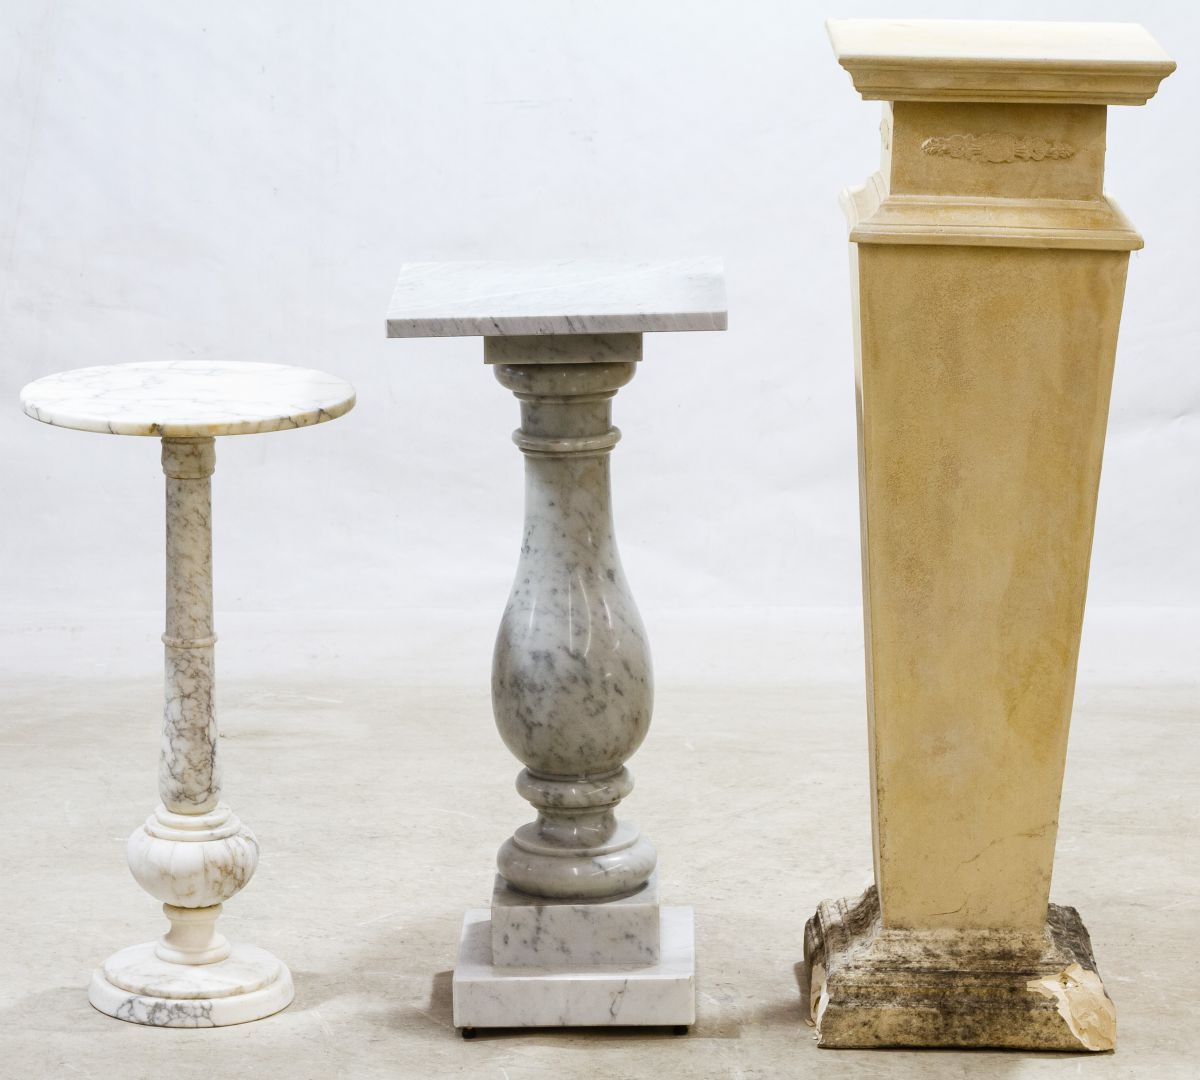 antiques s tmp england scagliola pedestals prime resource for architectural lassco plaster pedestal